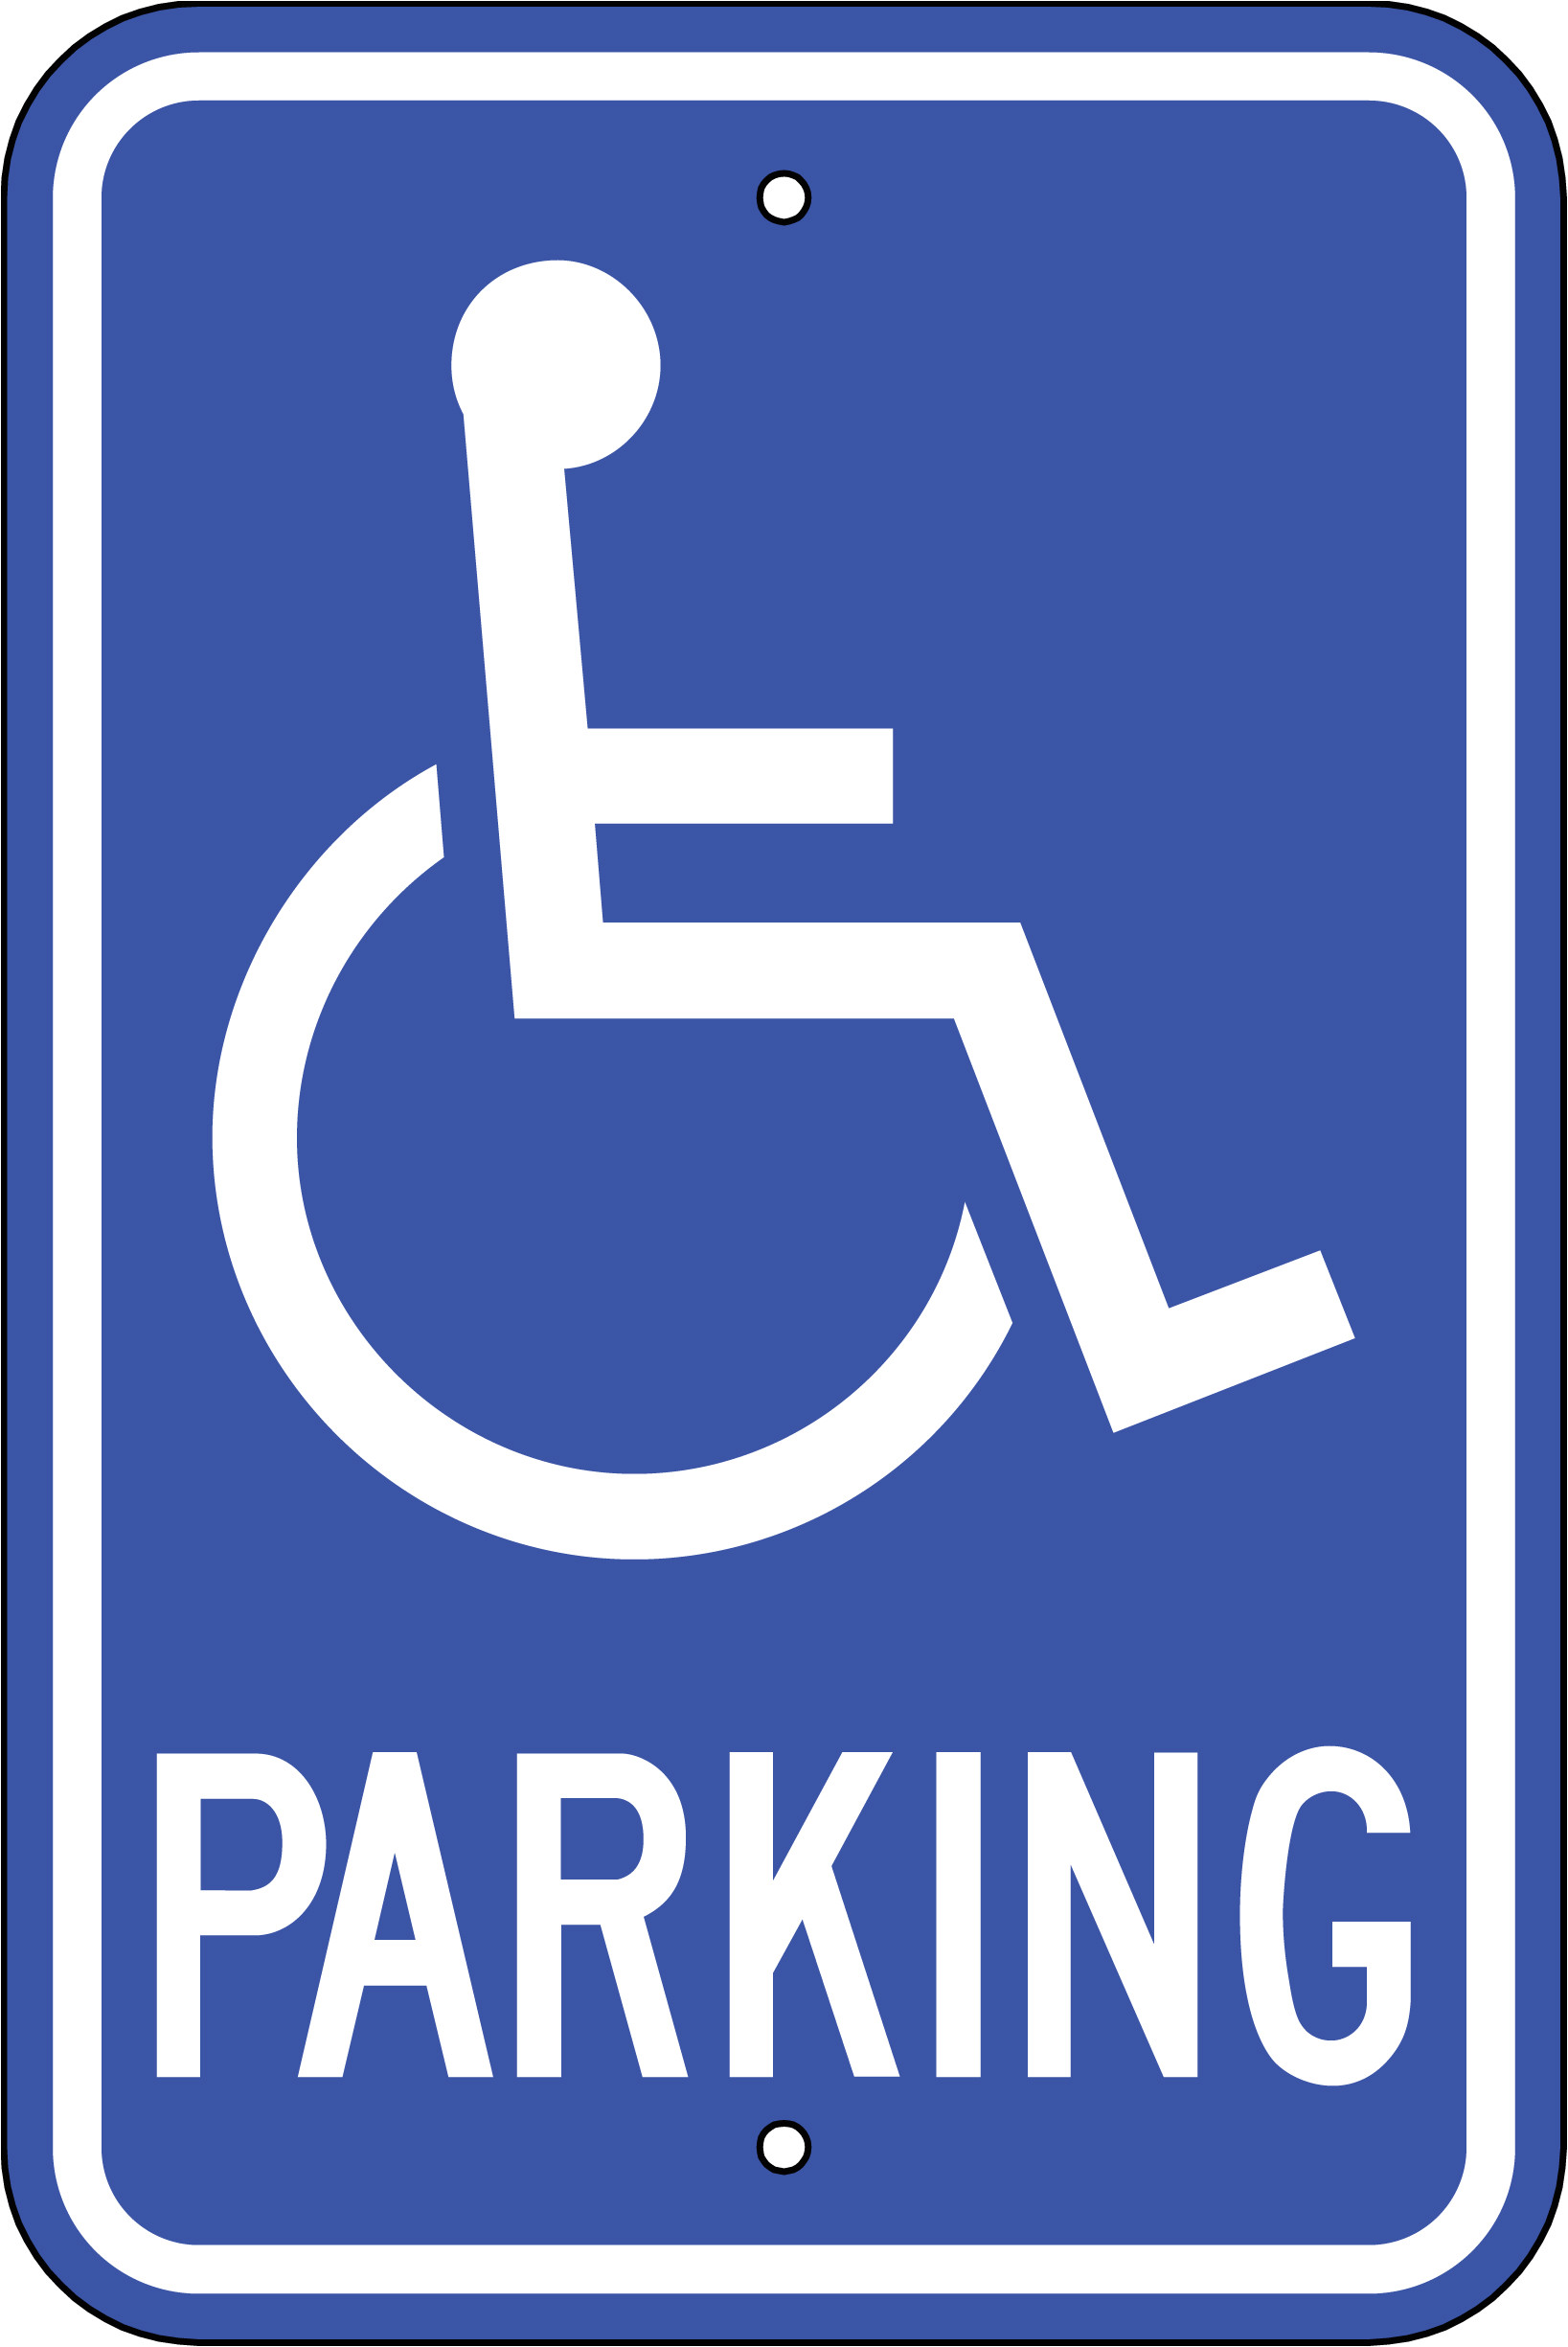 Handicap Parking Sign Template Free Printable Handicap Parking Signs Download Free Clip